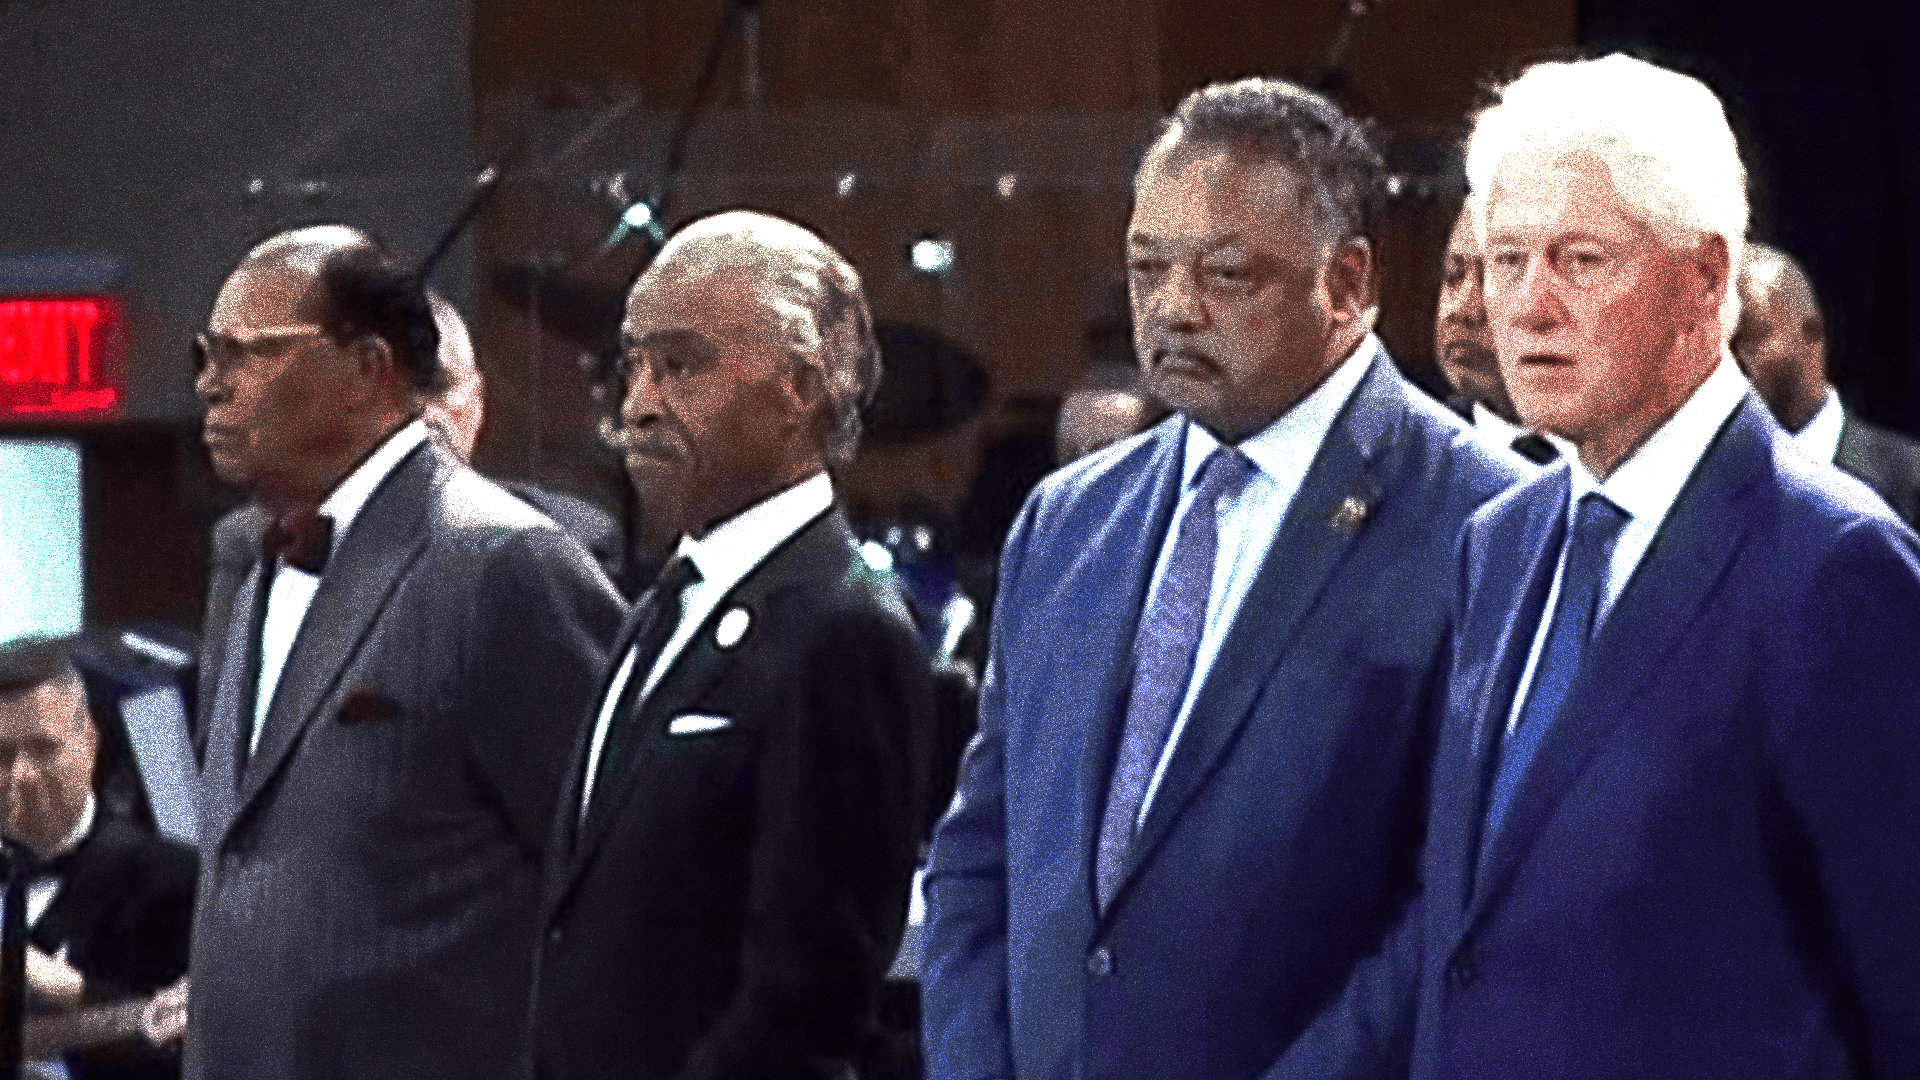 From left: Louis Farrakhan, Al Sharpton, Jesse Jackson, and former President Bill Clinton at the funeral service for Aretha Franklin in Detroit, Michigan, August 31st, 2018.